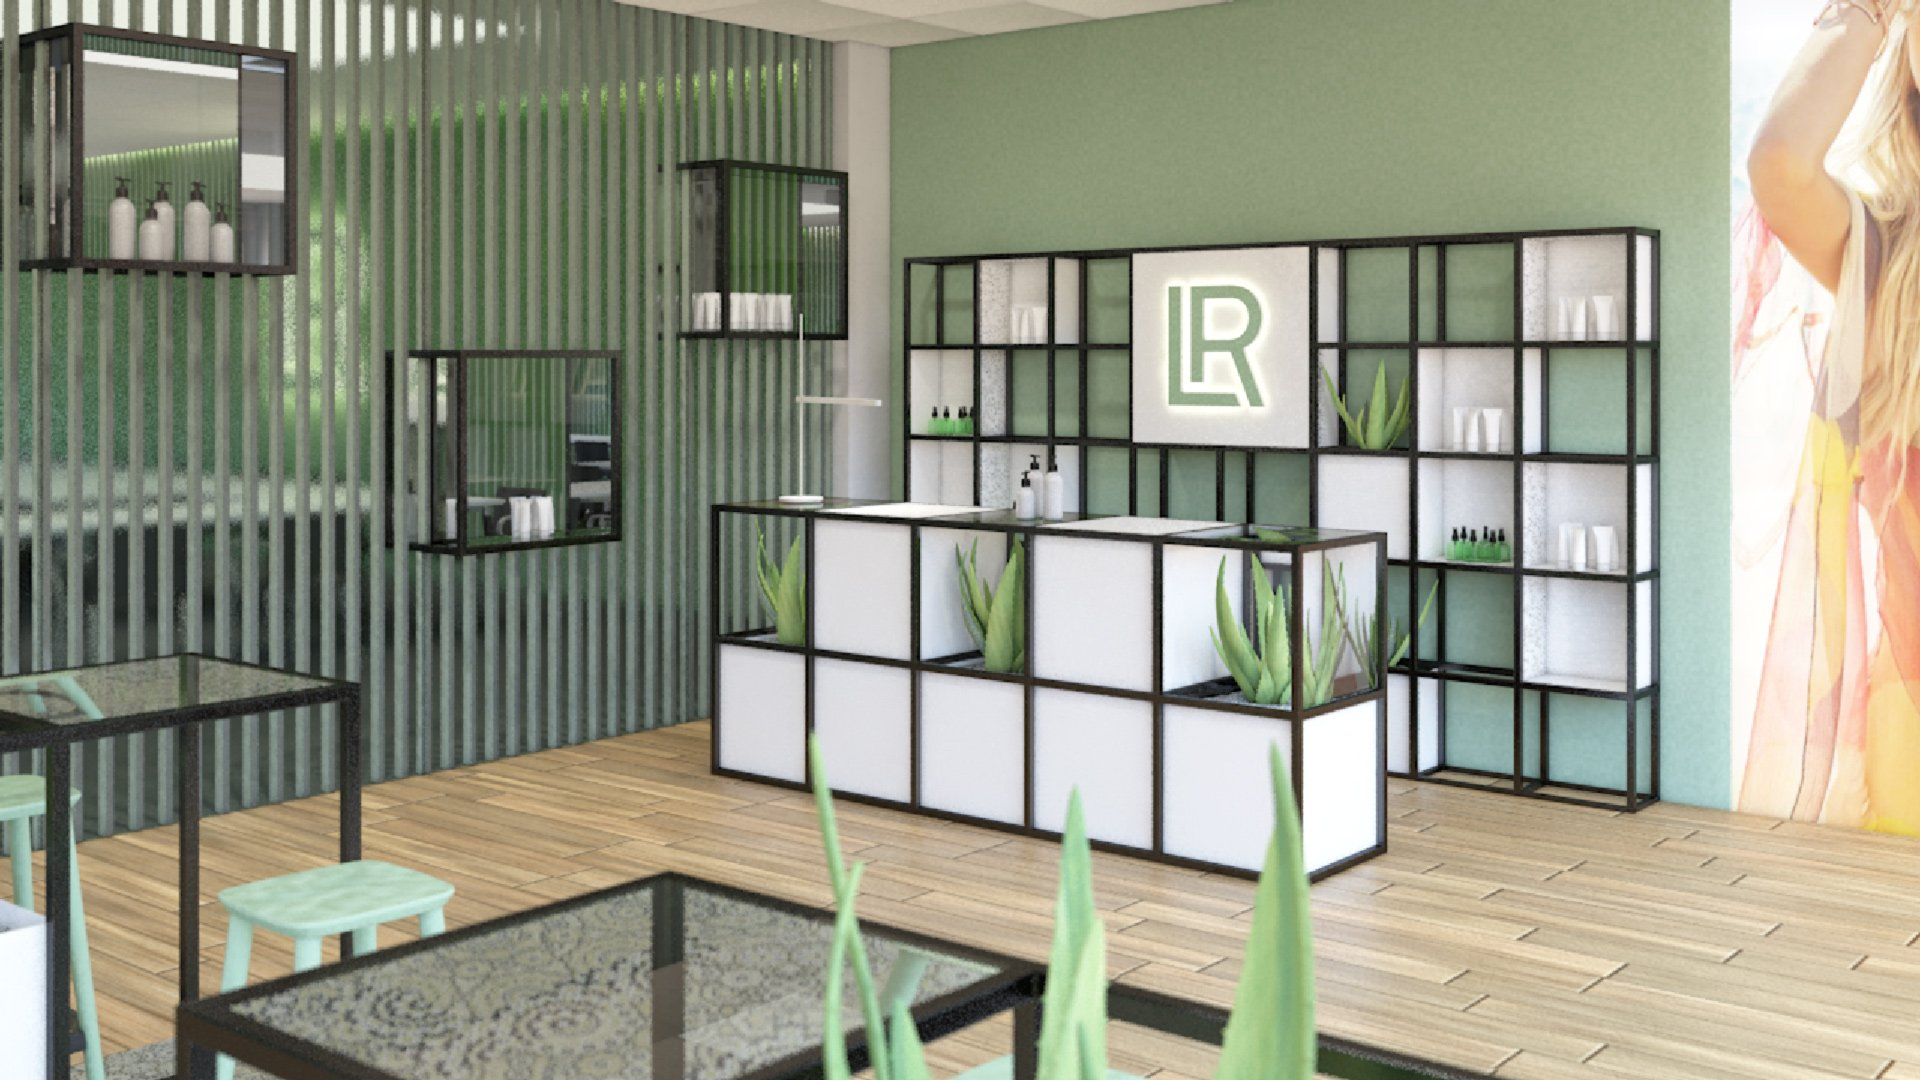 LR Health Beauty | Seminarraum